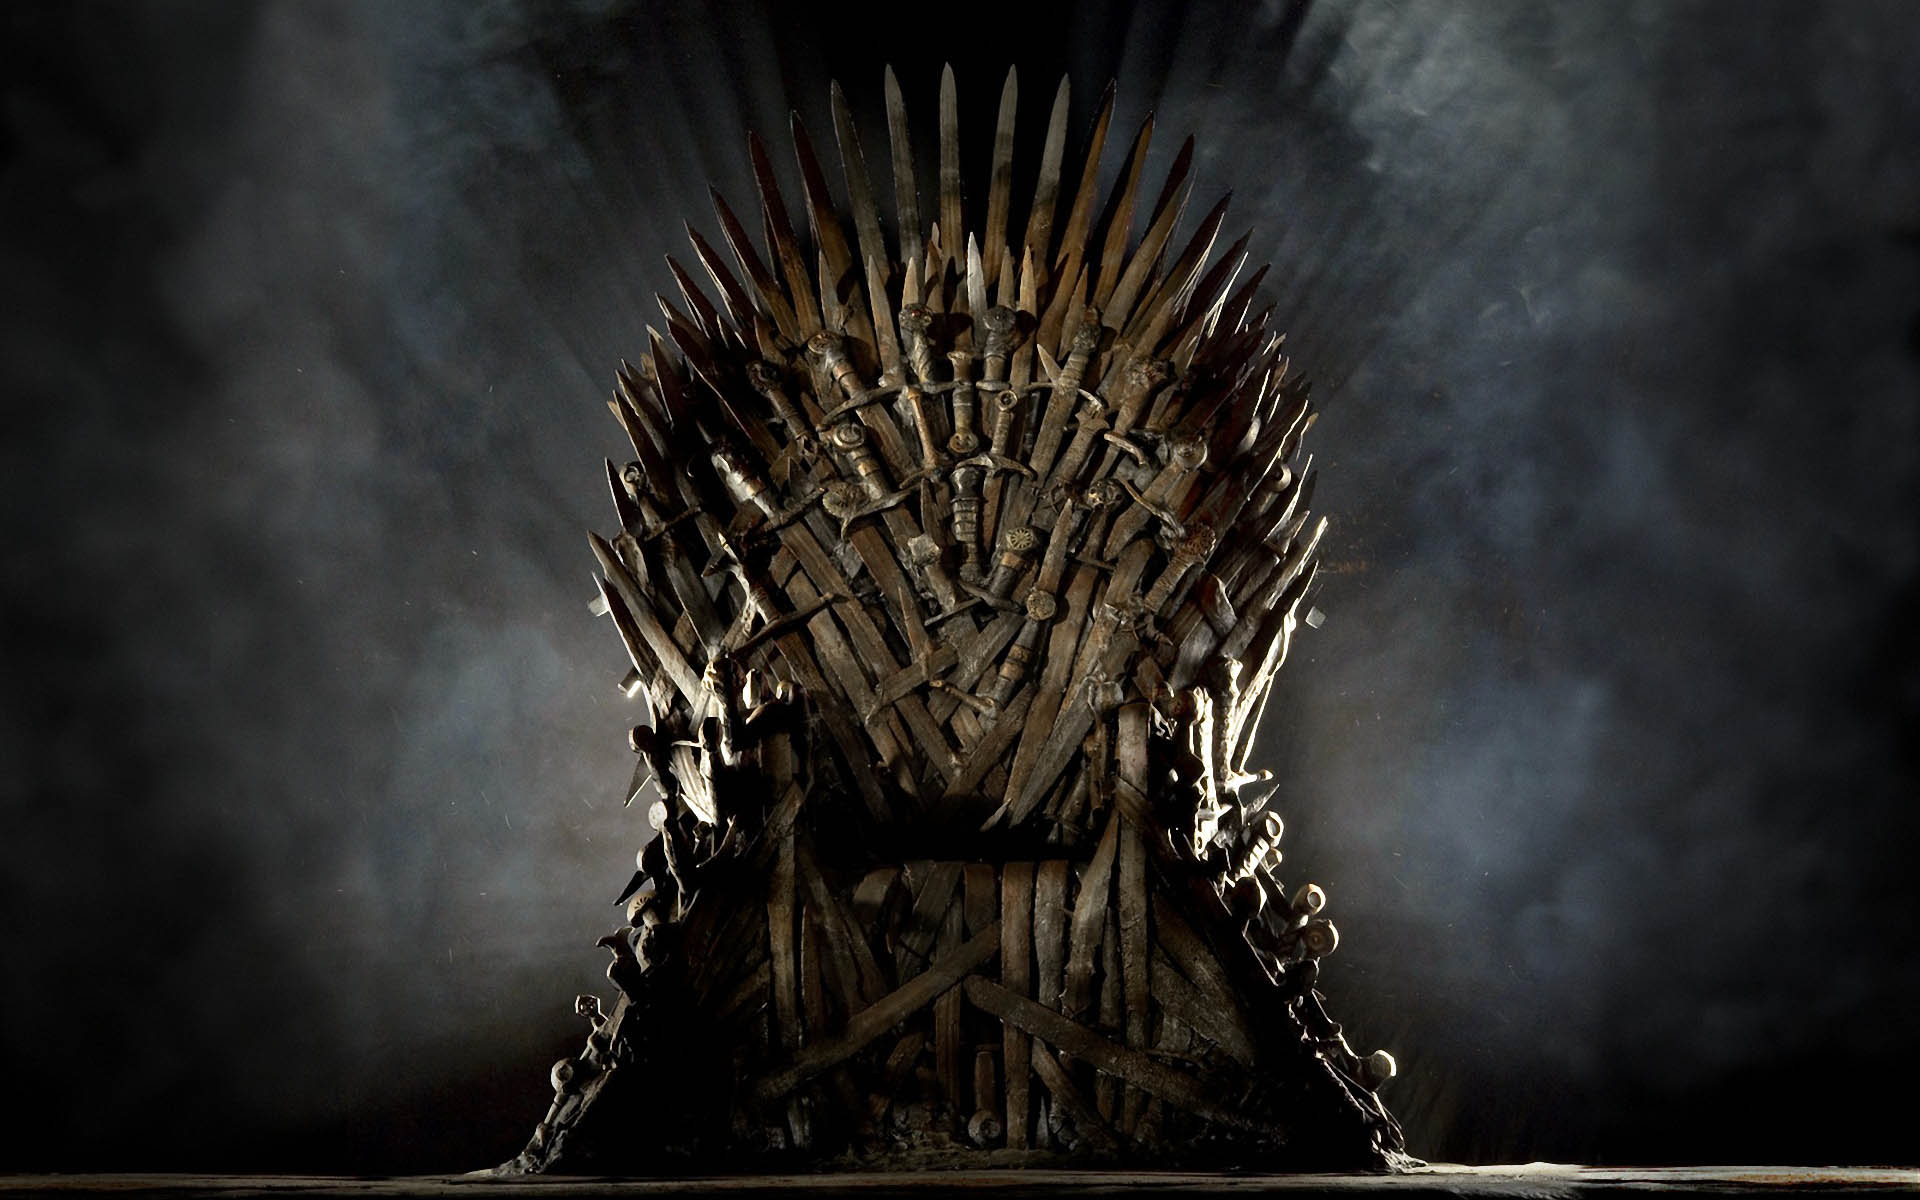 game of thrones desktop wallpaper 12372